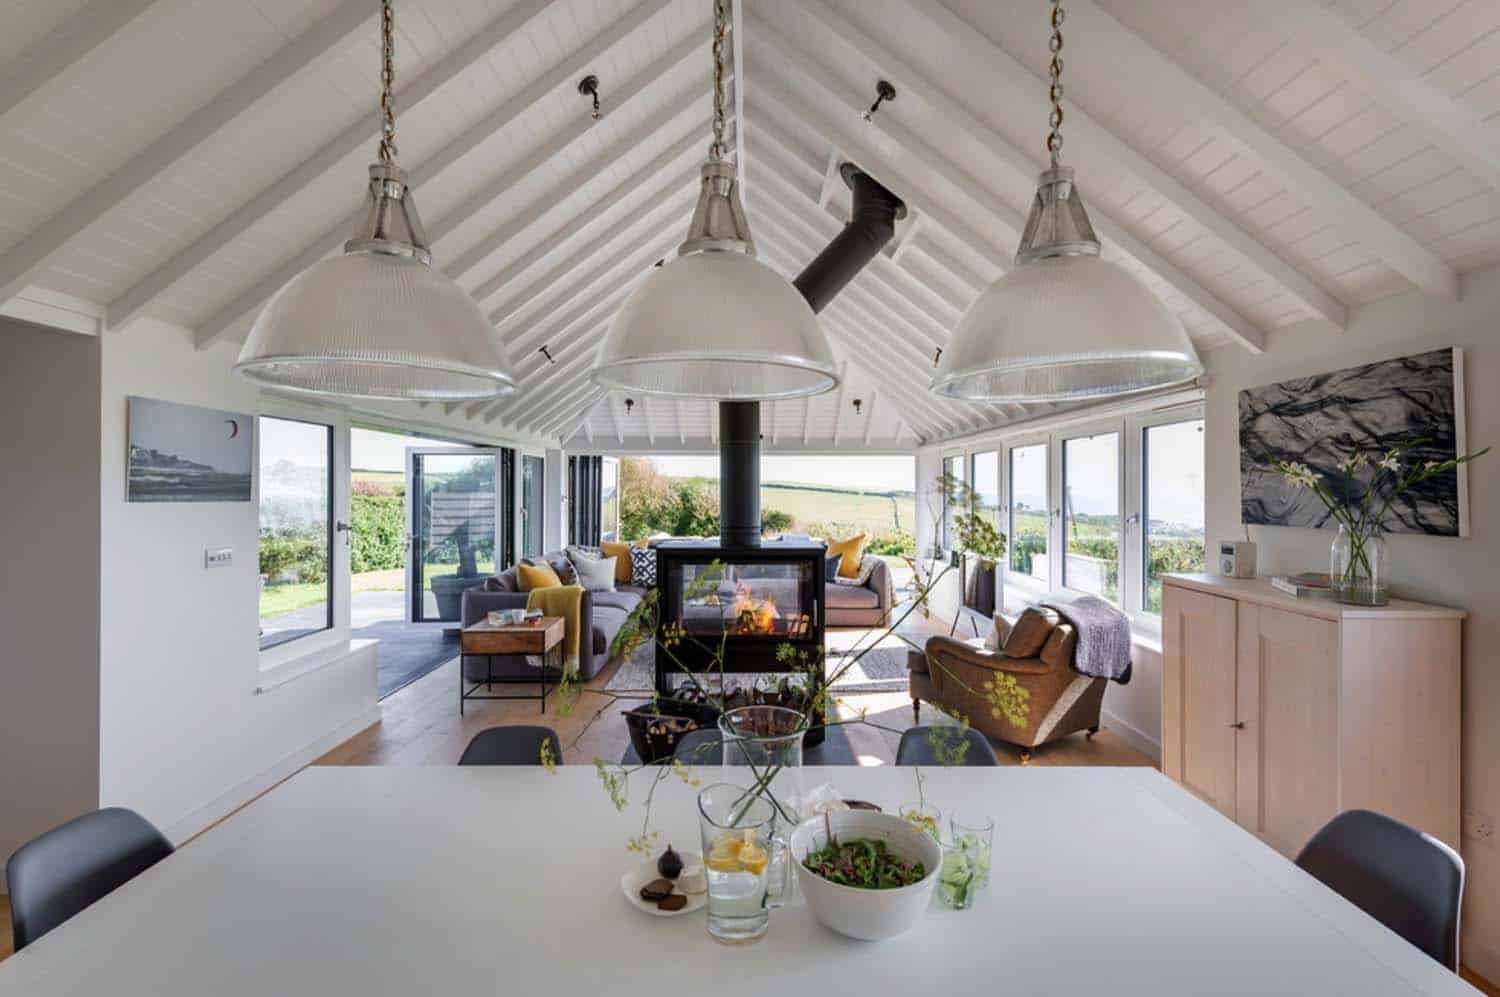 seaside-bungalow-renovation-woodford-architecture-07-1-kindesign